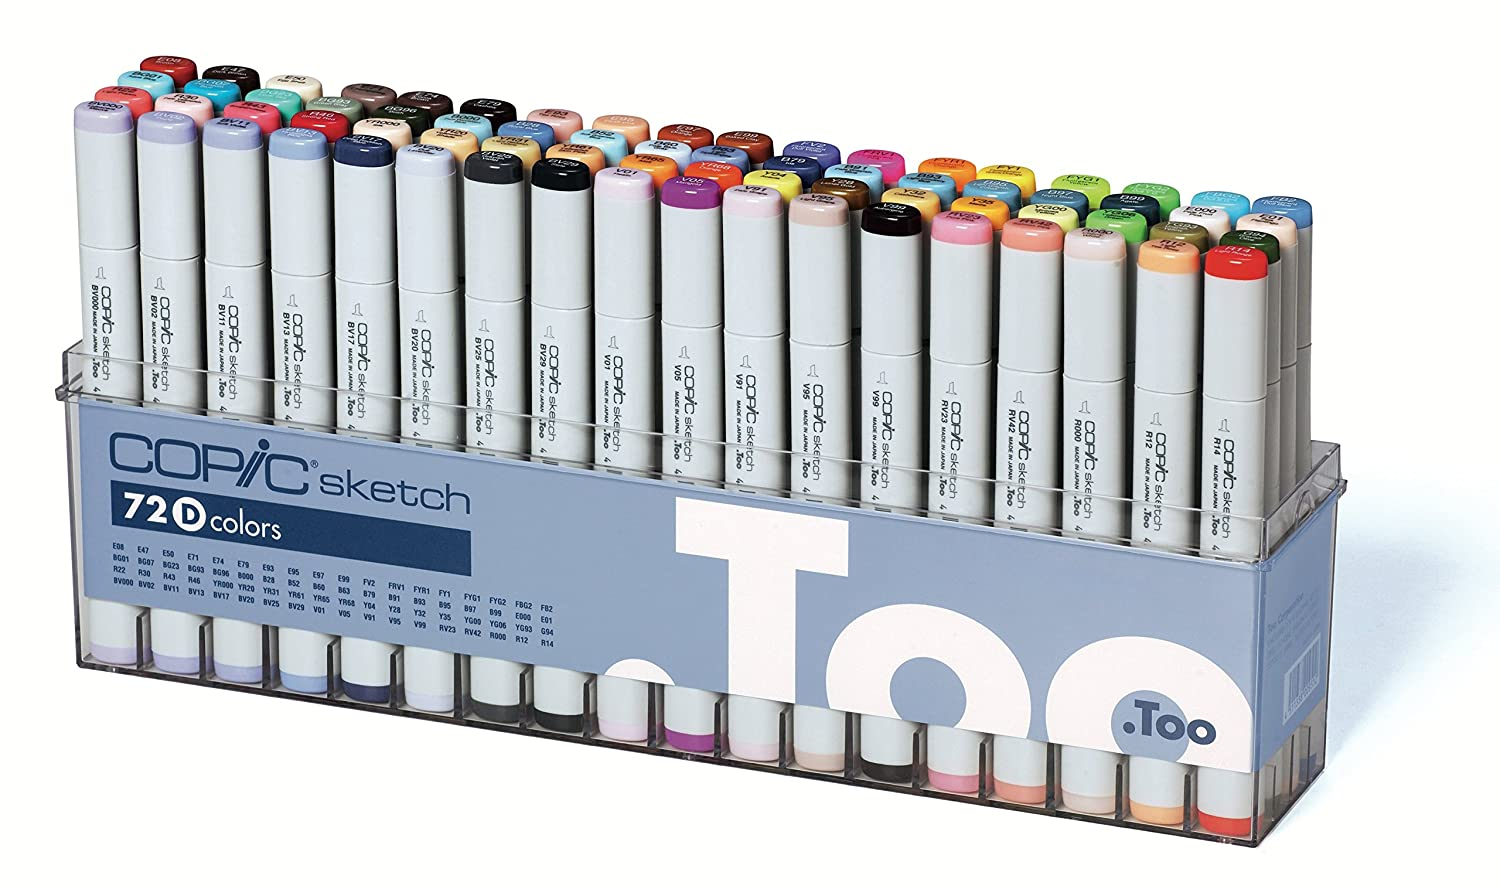 Copic Marker 72 Piece Sketch Set D Stationery Goods